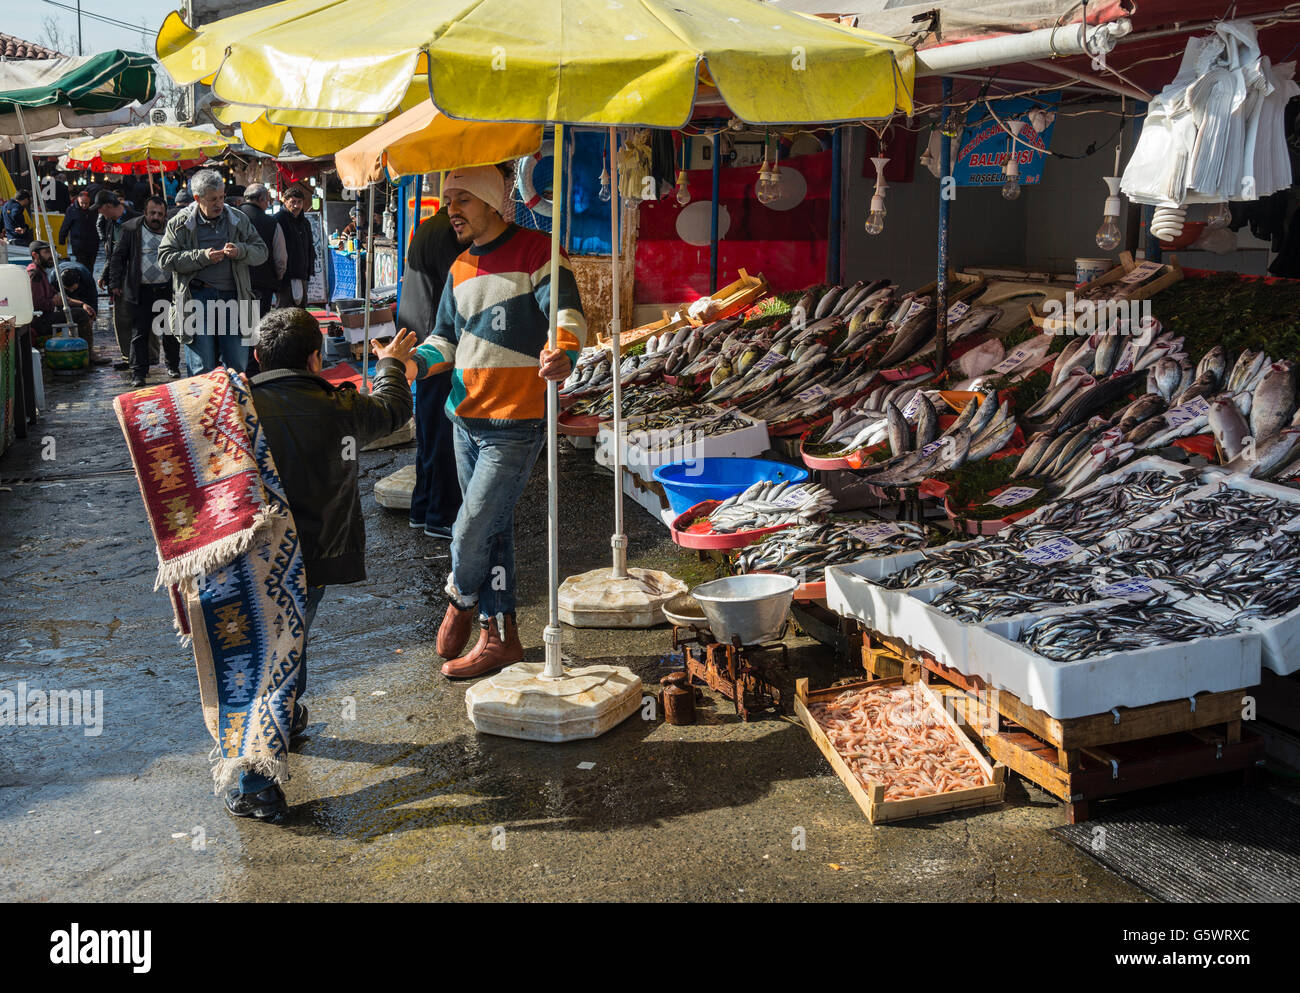 The fish market on Karakoy waterfront, Beyoglu,  Istanbul, Turkey. - Stock Image